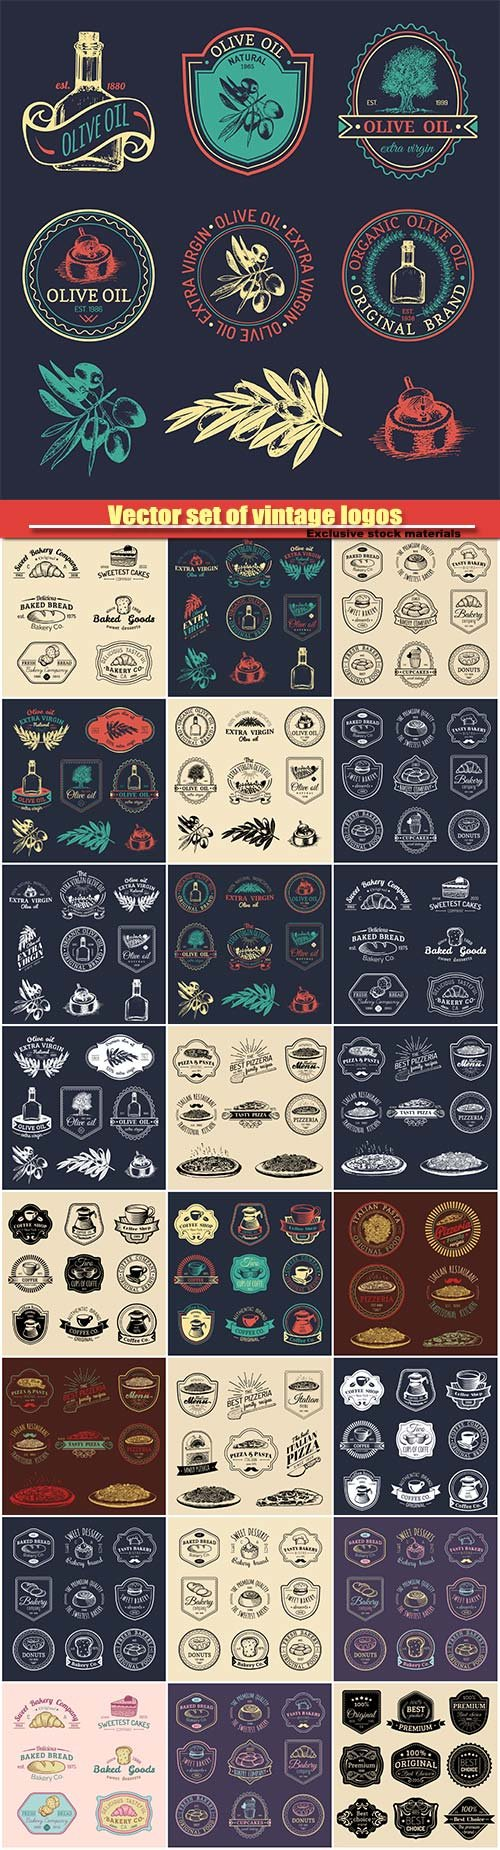 Vector set of vintage logos, restaurant icons, emblems collection